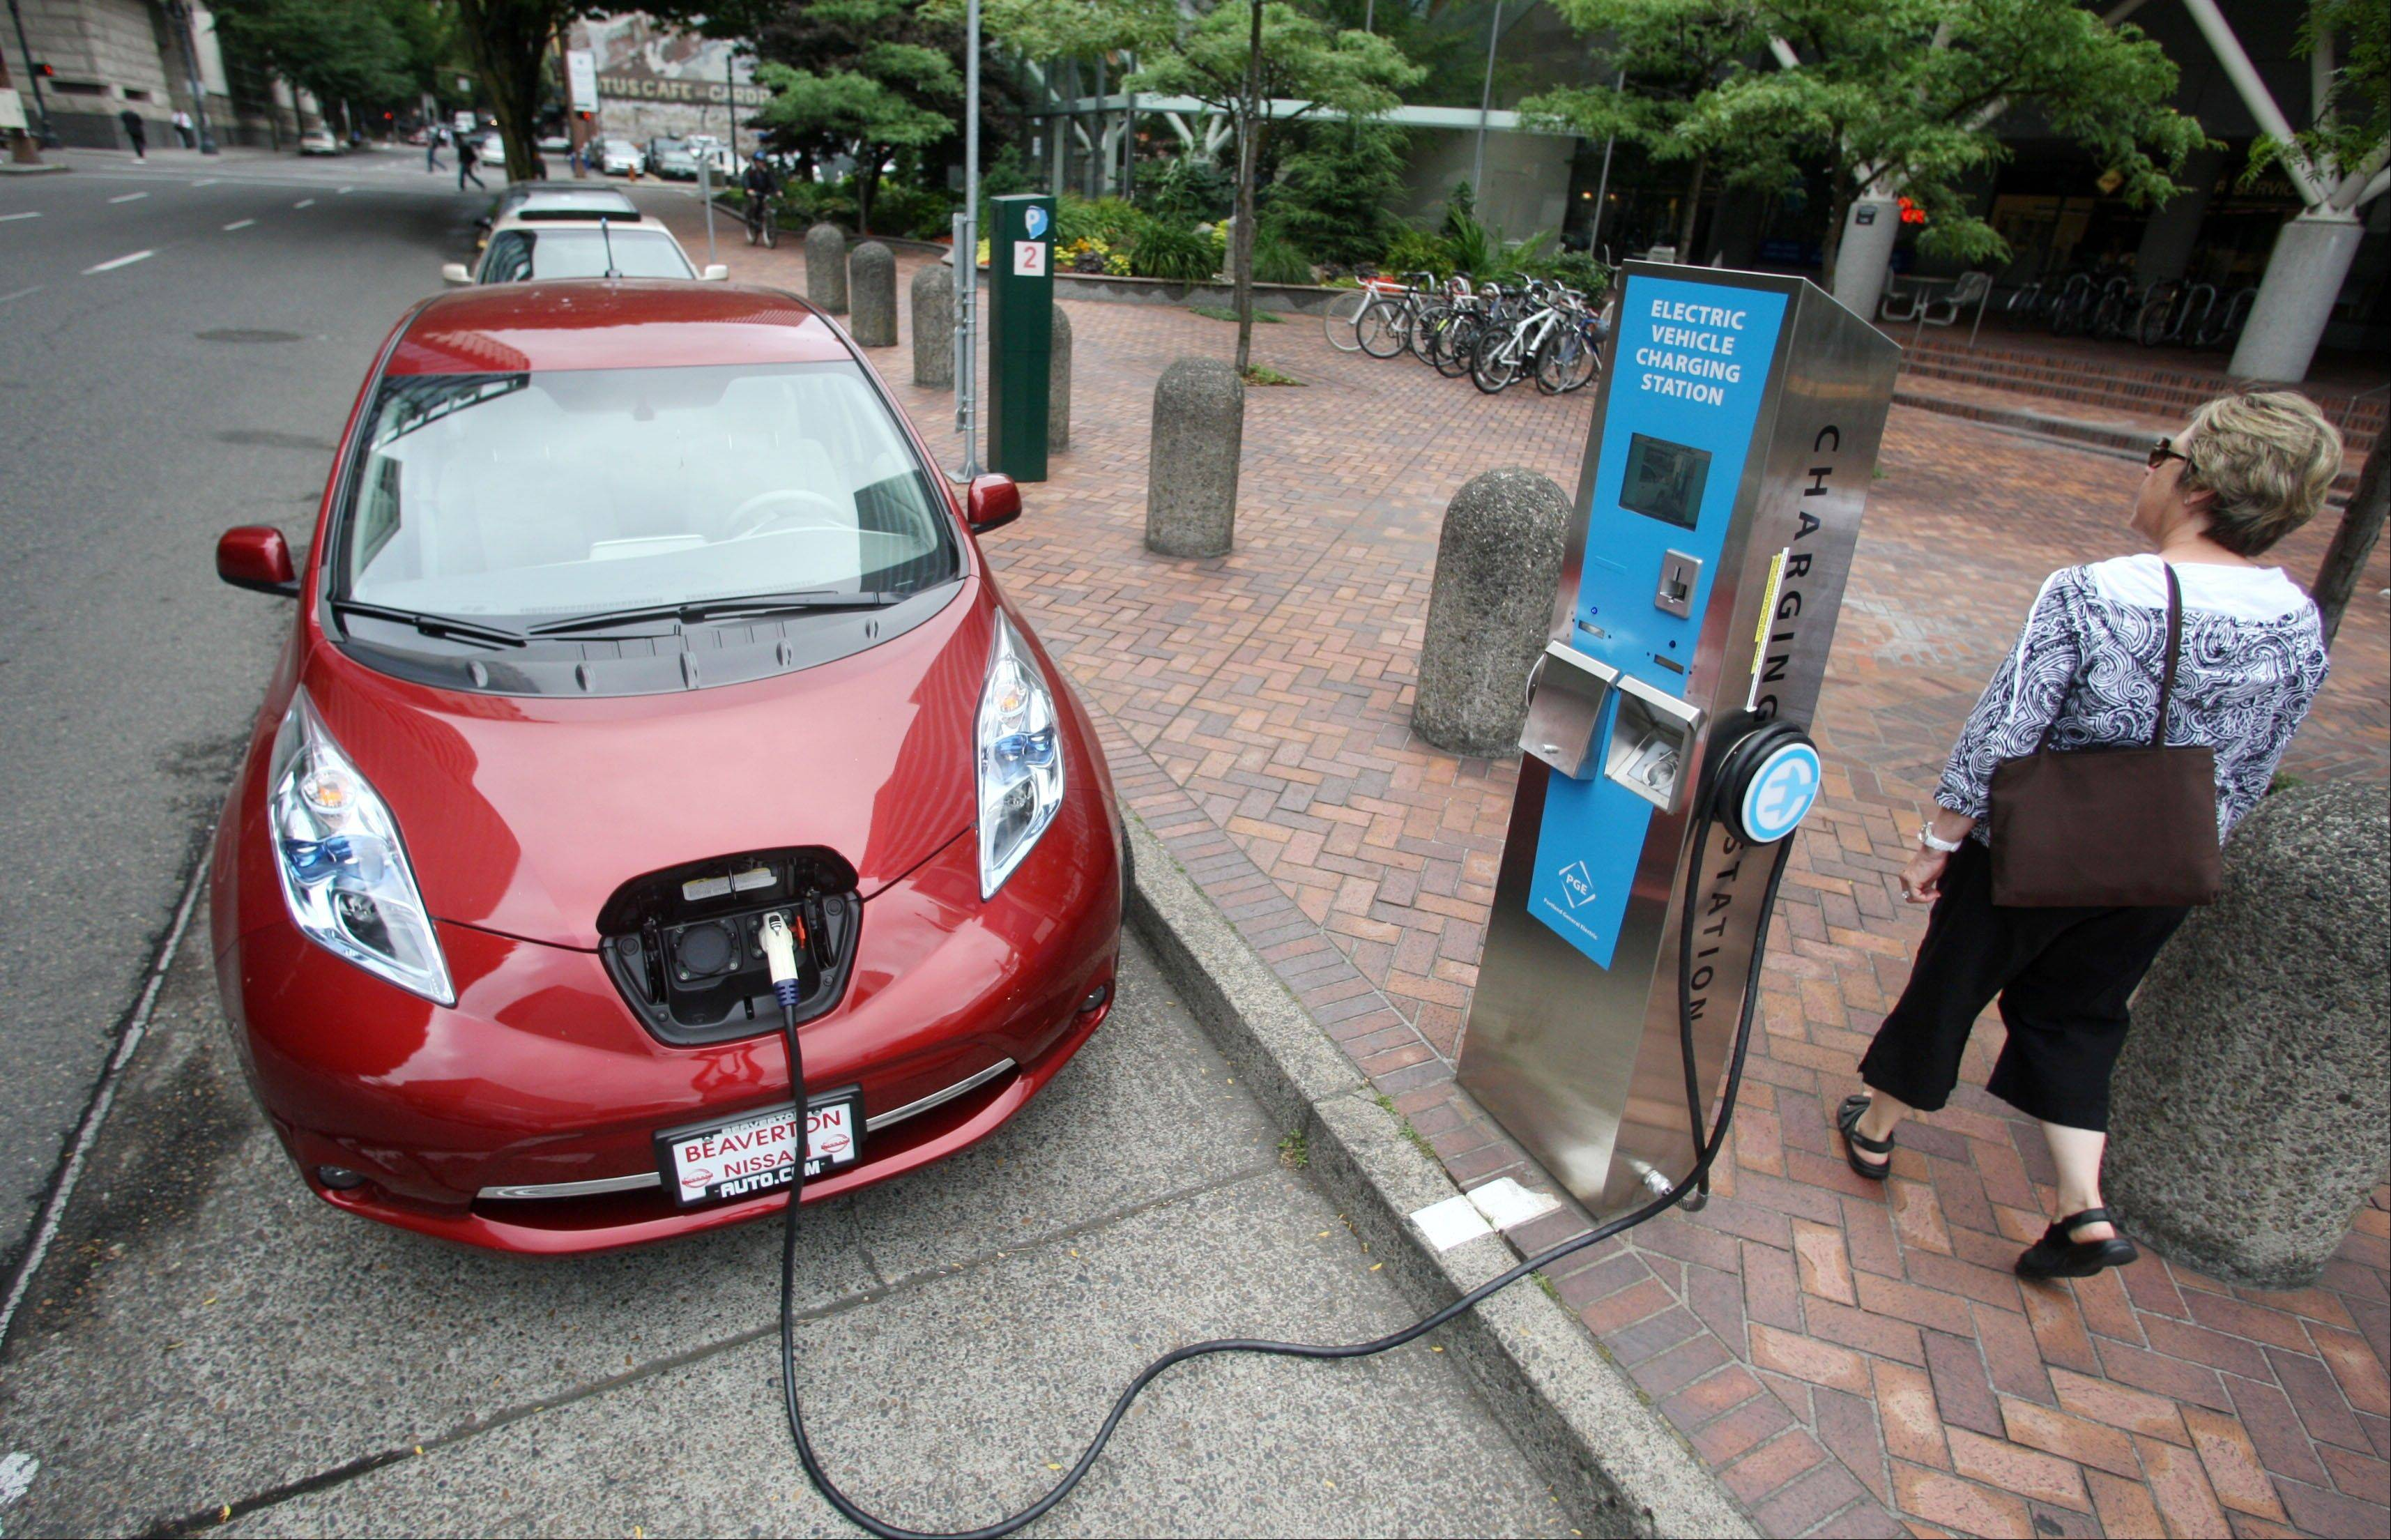 A Nissan Leaf charges at an electric vehicle charging station in Portland, Ore. Automakers have sweetened deals in recent months for plug-in electric cars in a bid to boost sales and move the vehicles off dealer lots as the end of the year nears. Earlier in 2013, Nissan dropped the price of its electric Leaf, helping boost its sales. It's now offering a three-year lease at $199 a month.